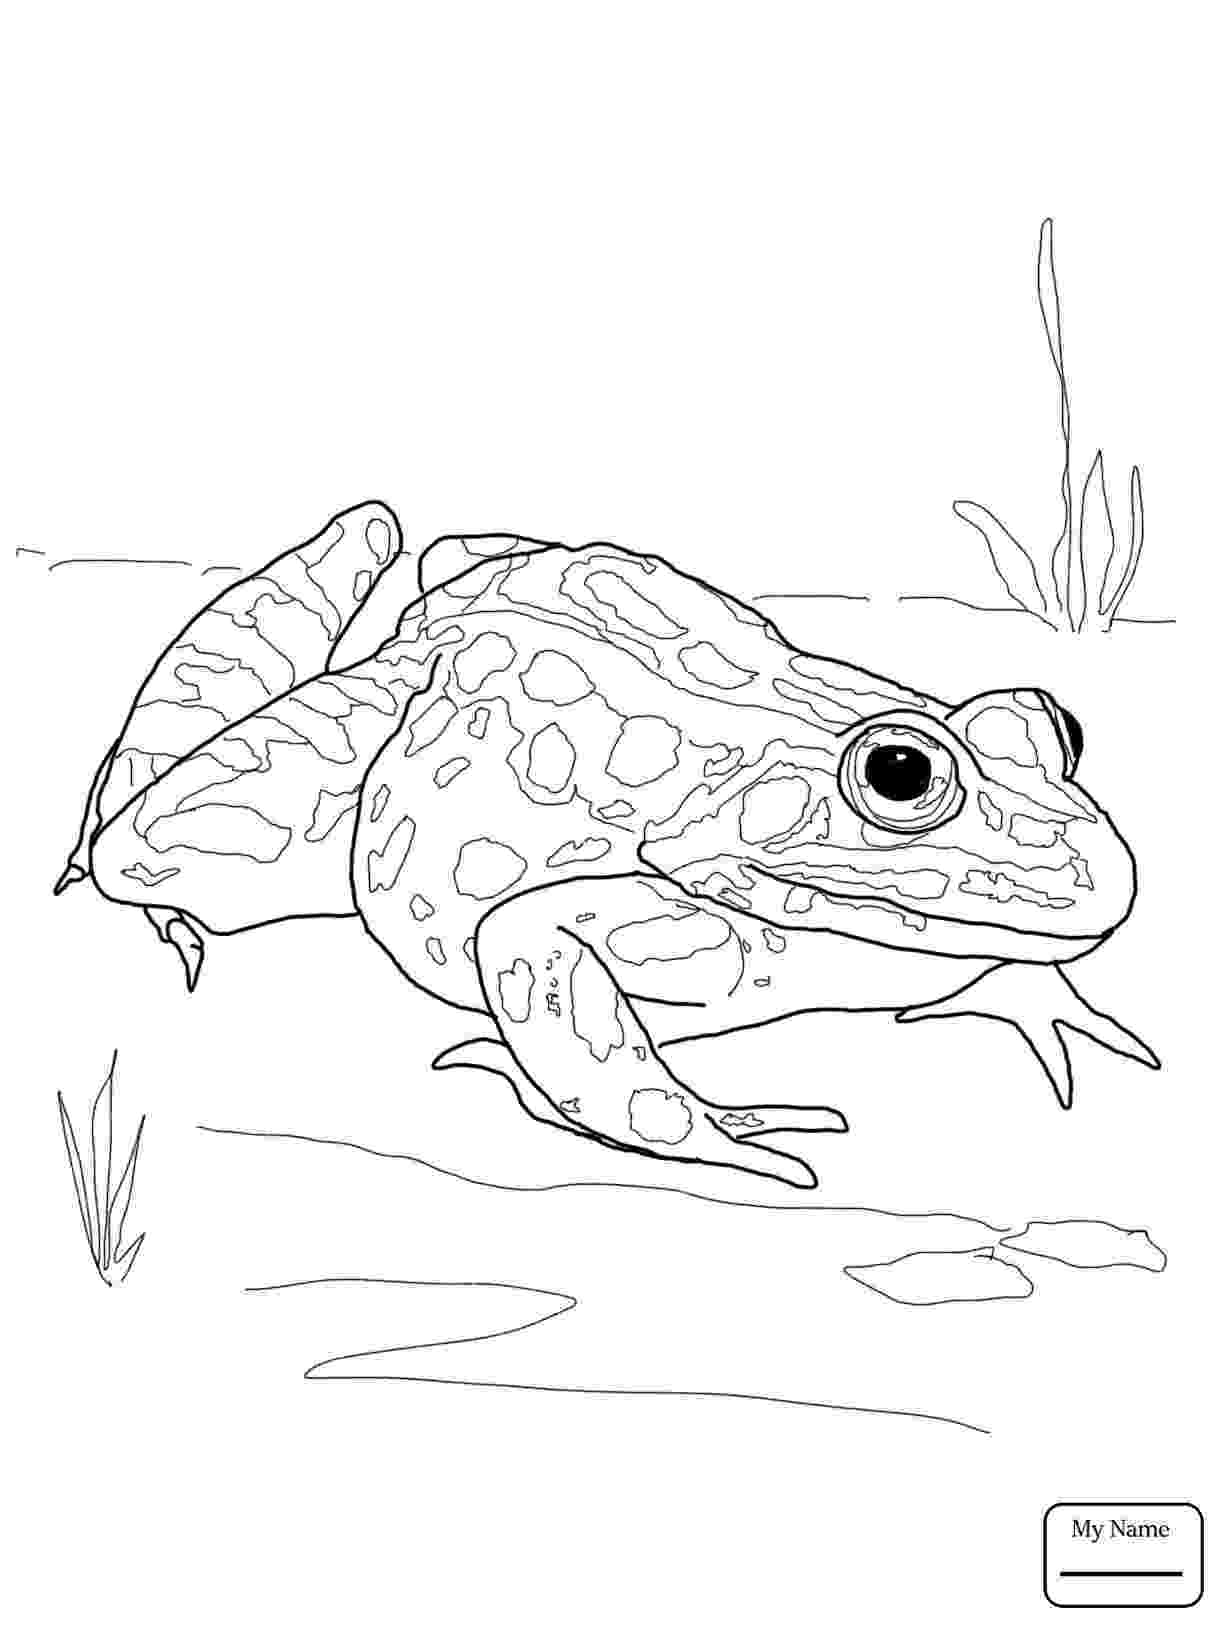 amphibian coloring pages reptile coloring pages to download and print for free amphibian pages coloring